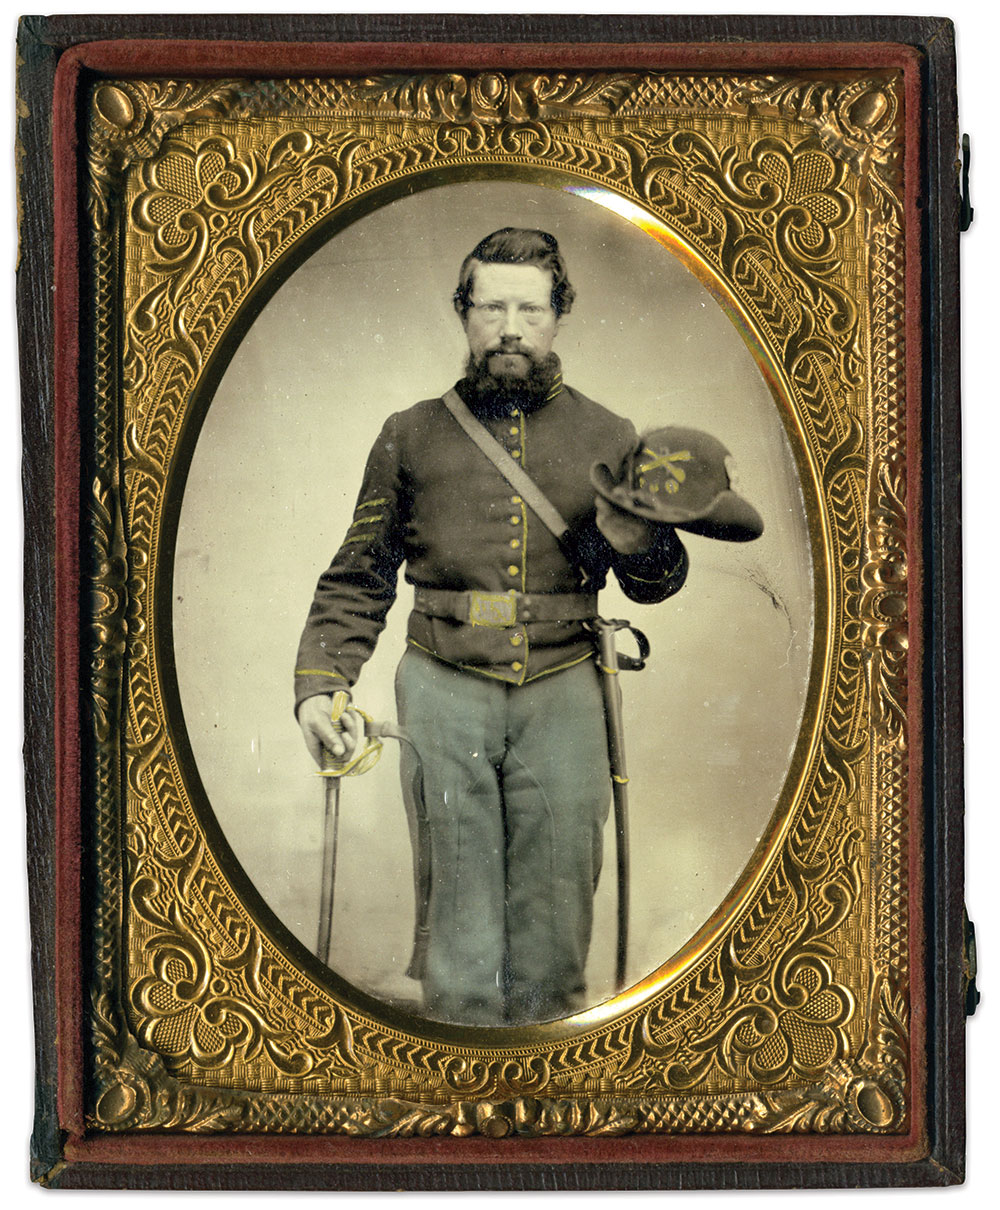 Quarter-plate tintype by an anonymous photographer. Rich Jahn Collection.